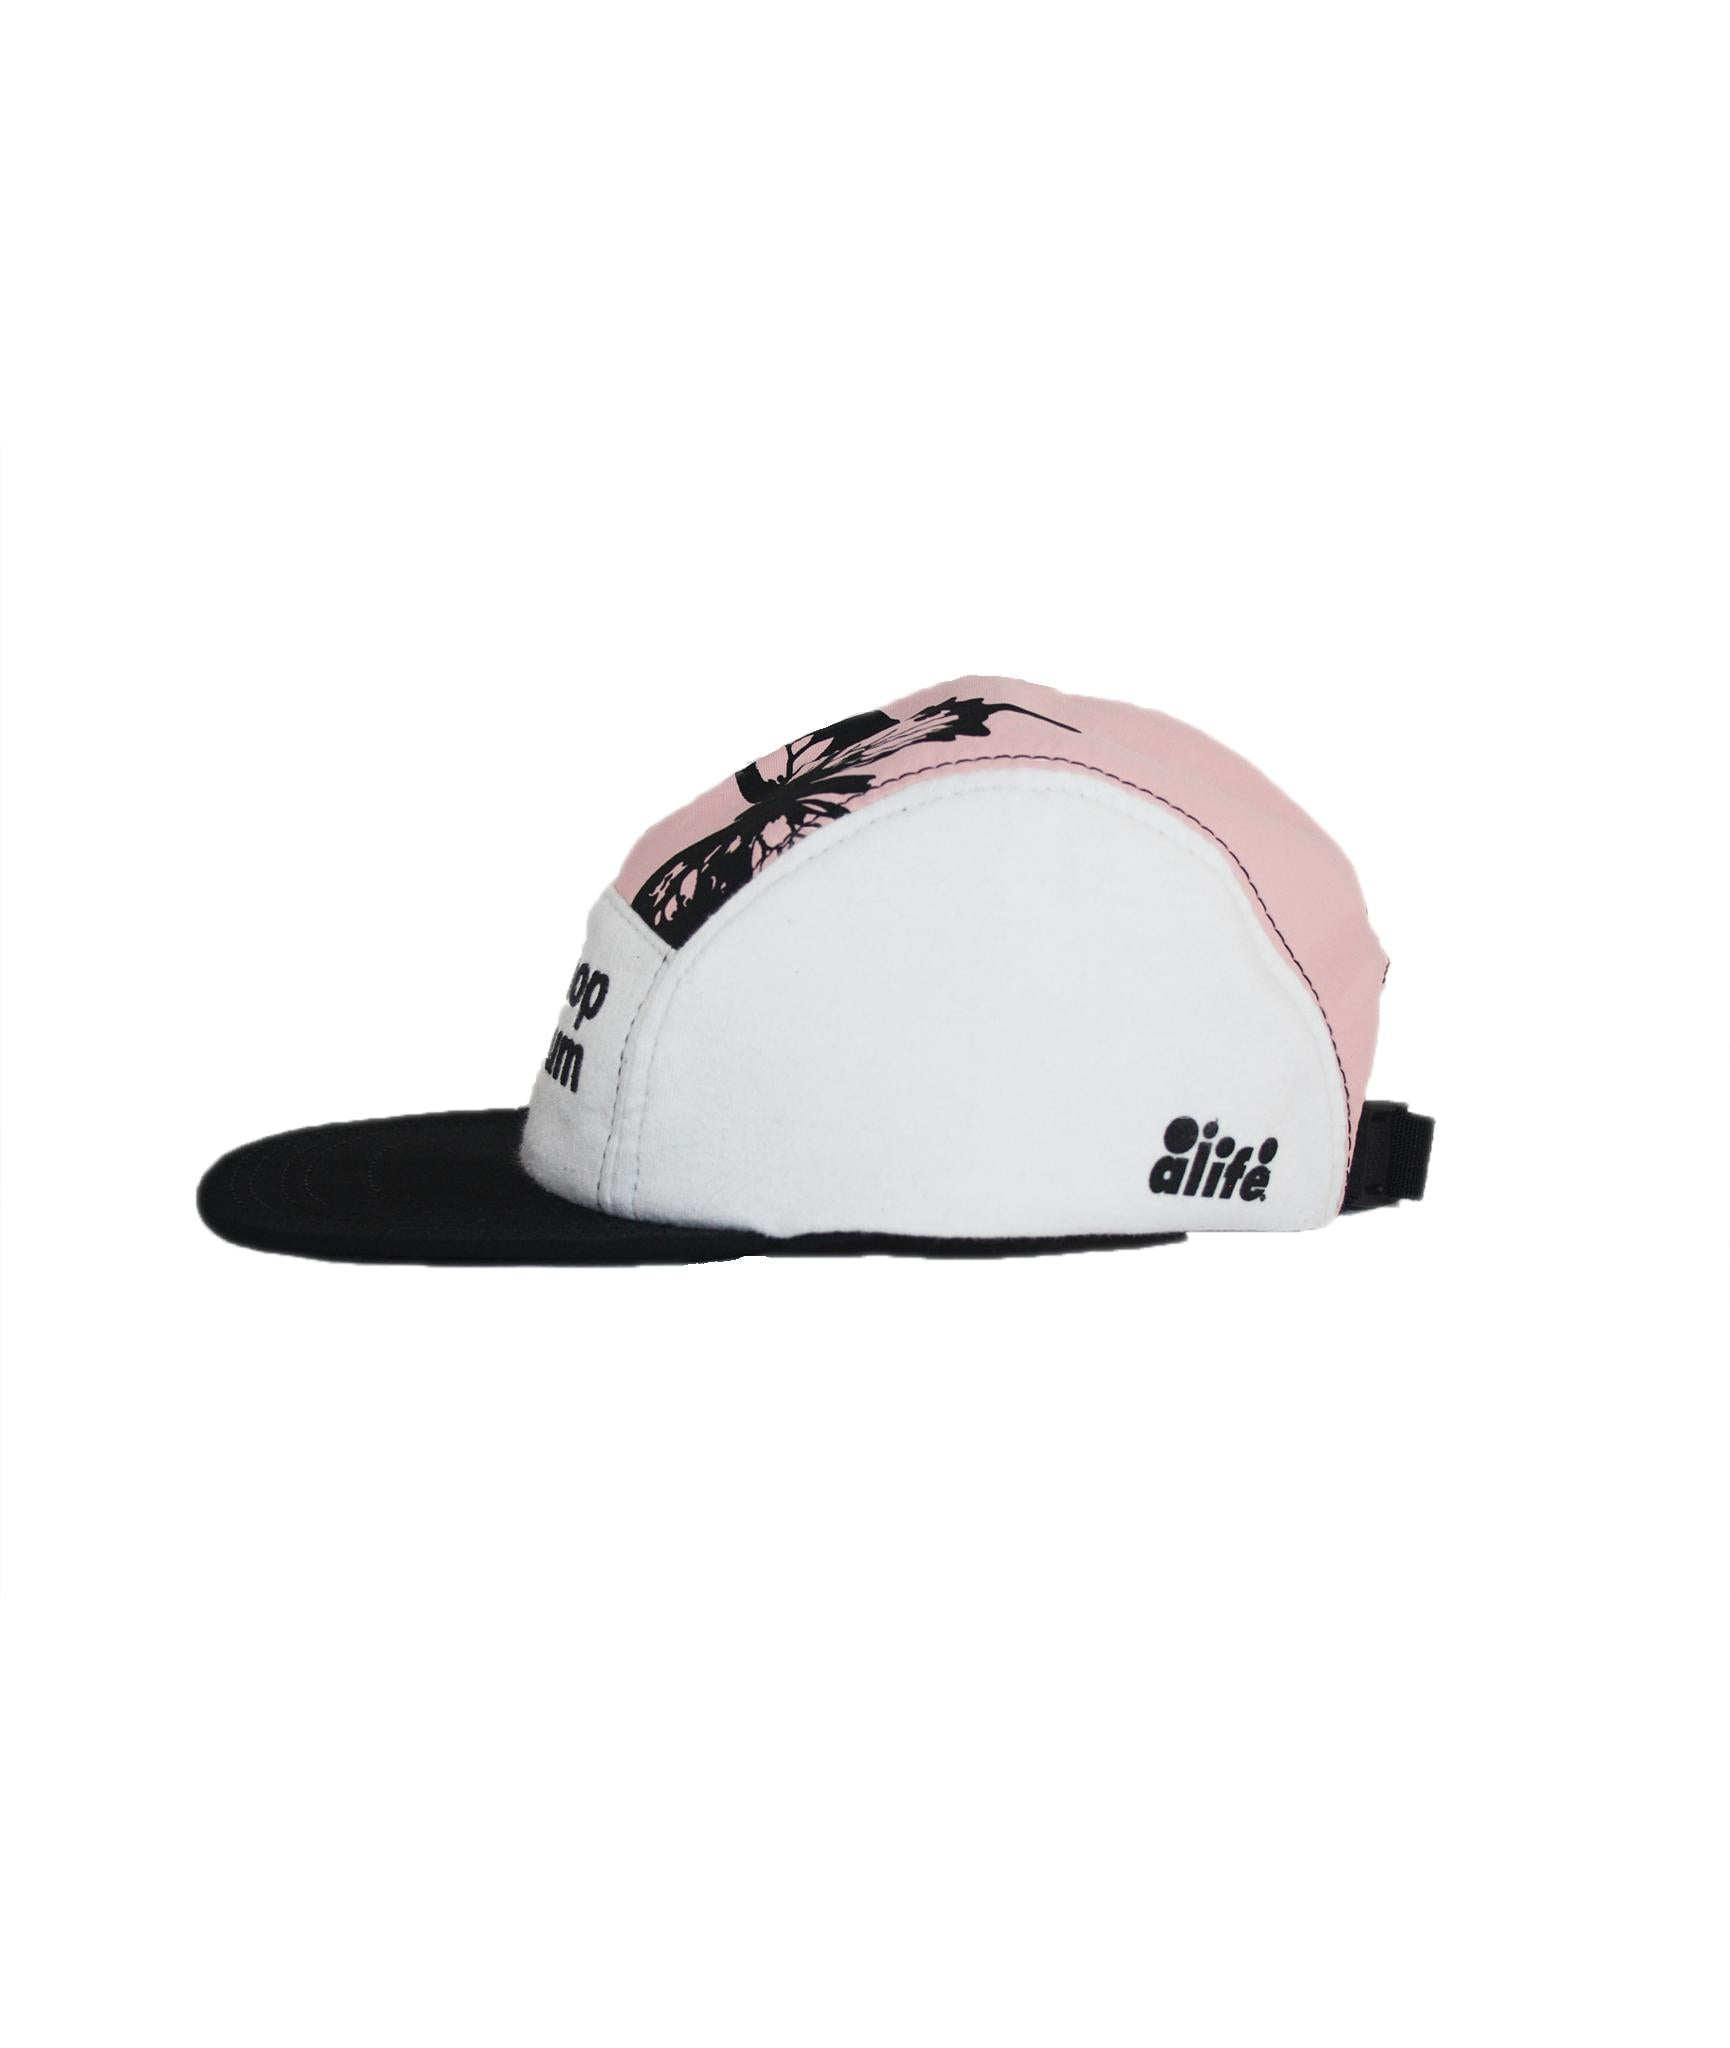 Alife Upcycle Hat - Butterfly Alife®/Shop Art Museum - Pink/White